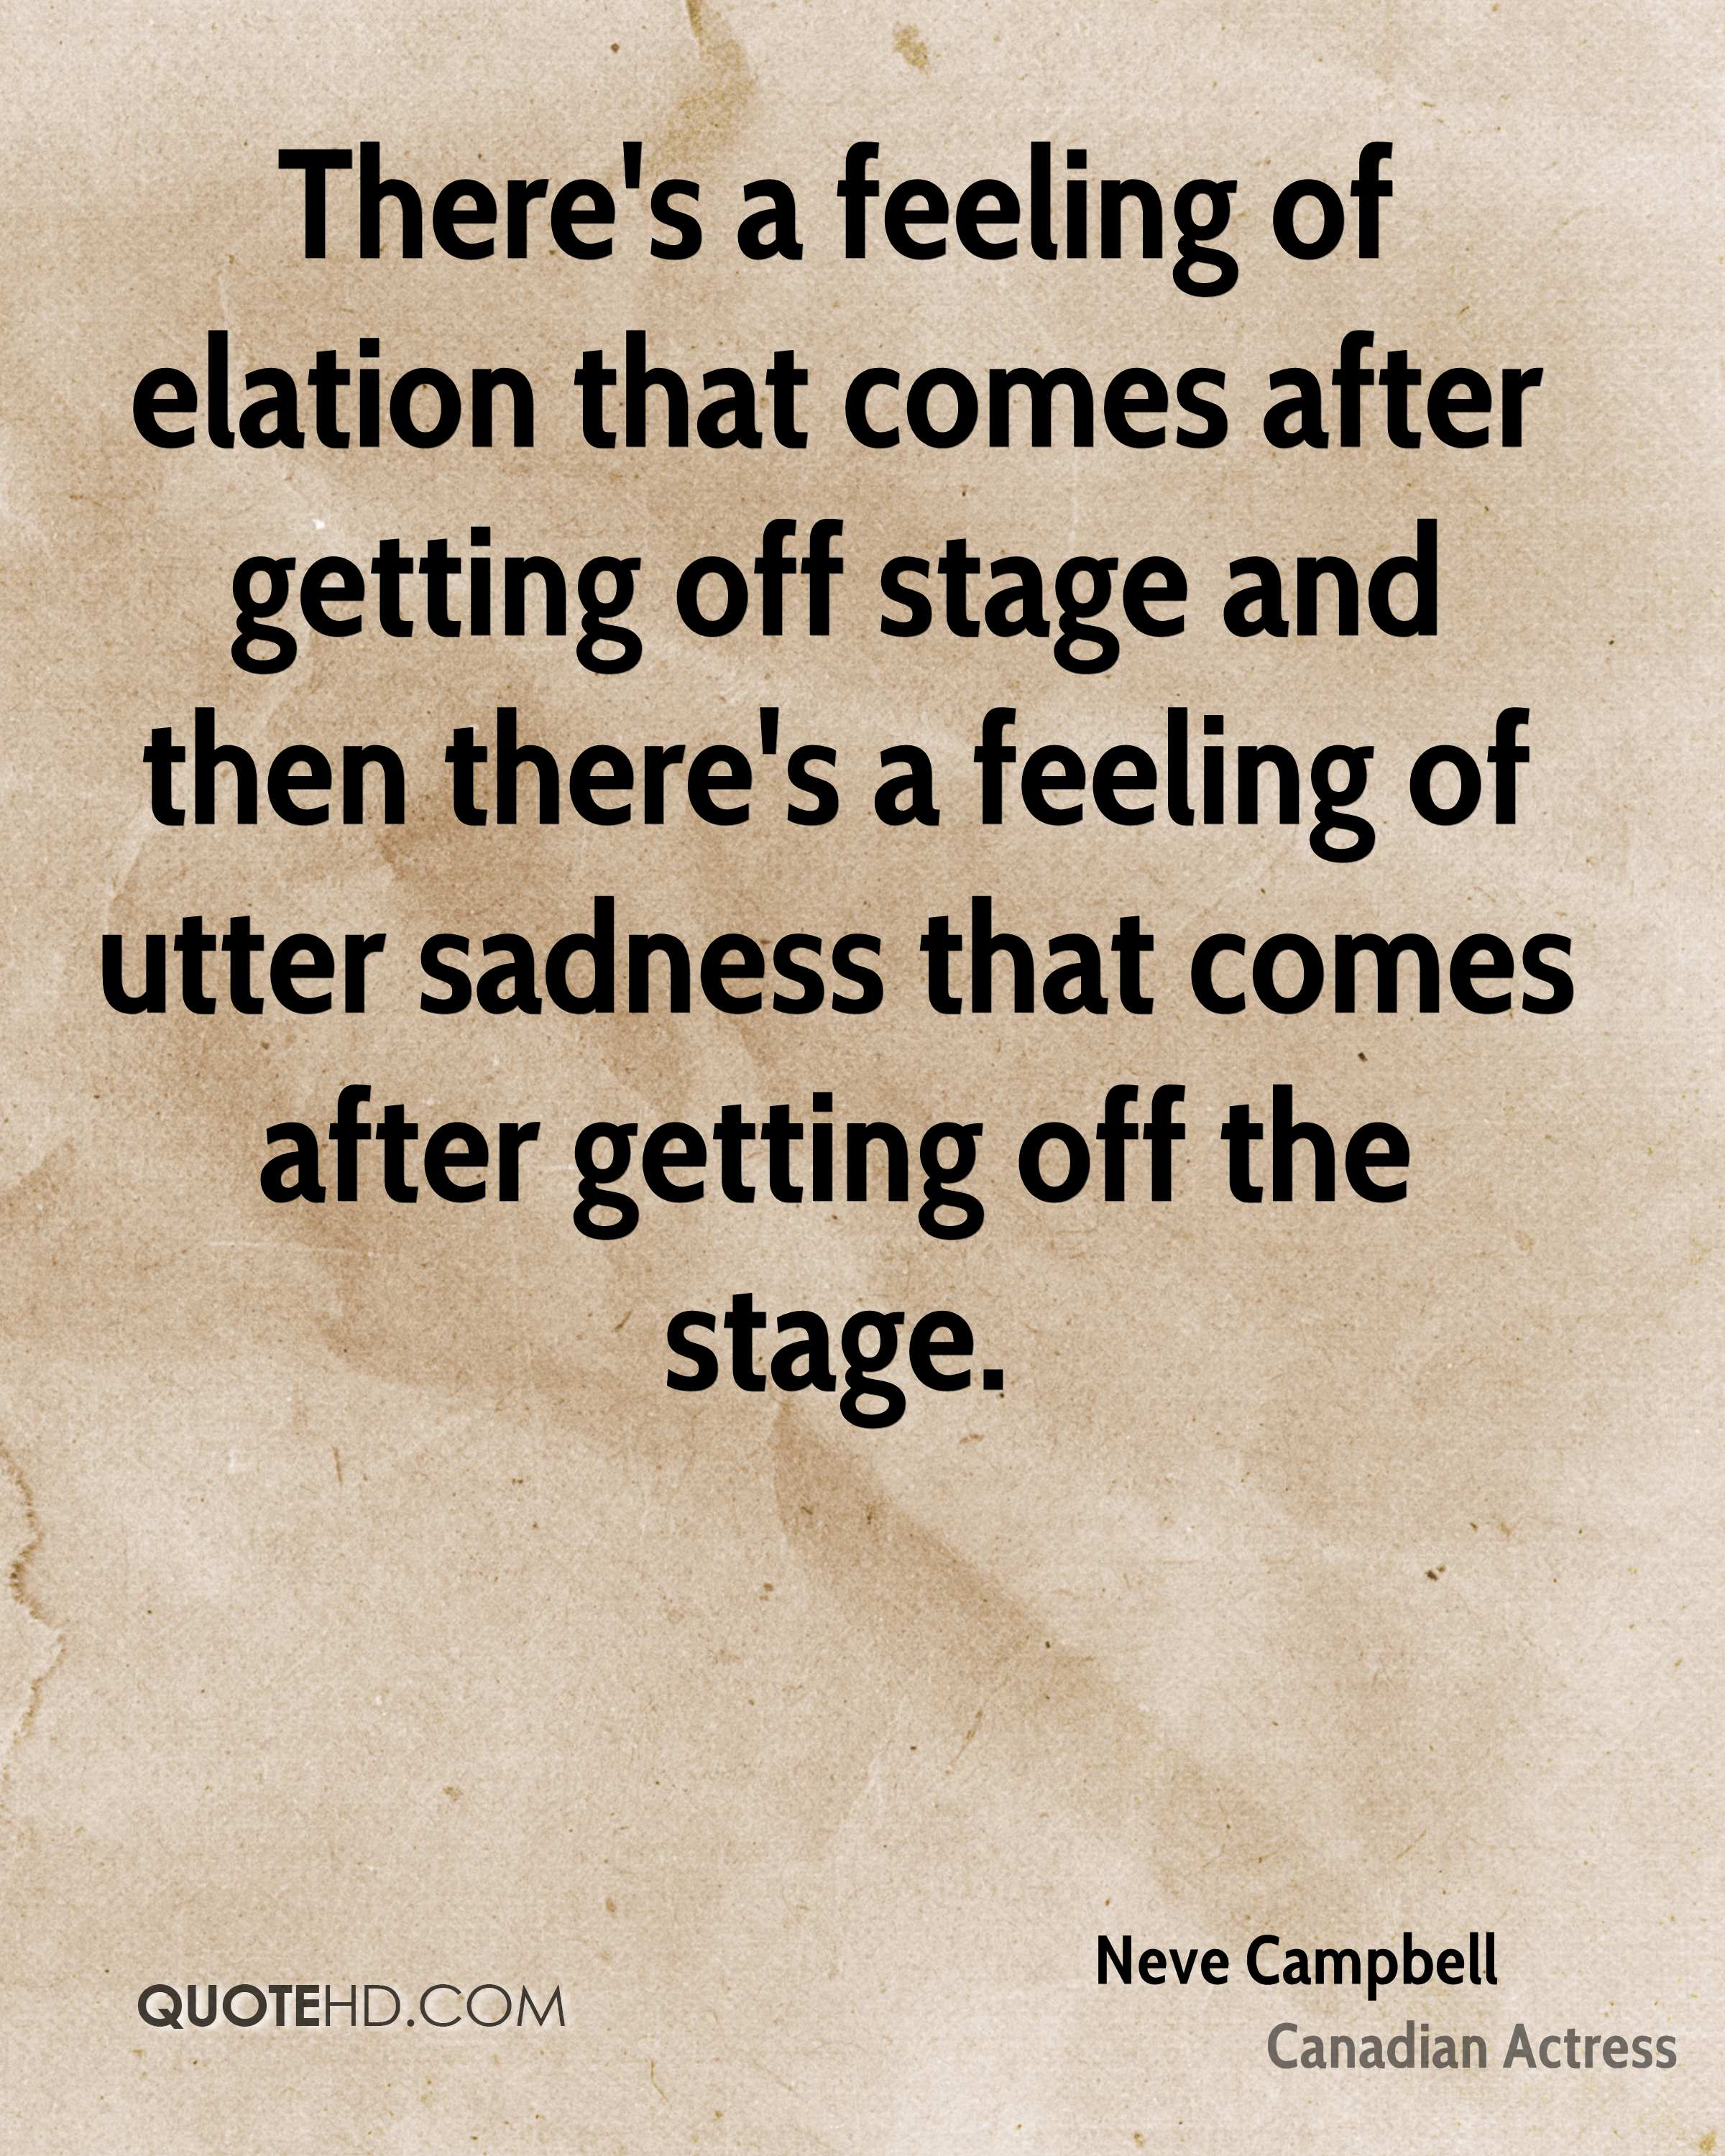 There's a feeling of elation that comes after getting off stage and then there's a feeling of utter sadness that comes after getting off the stage.